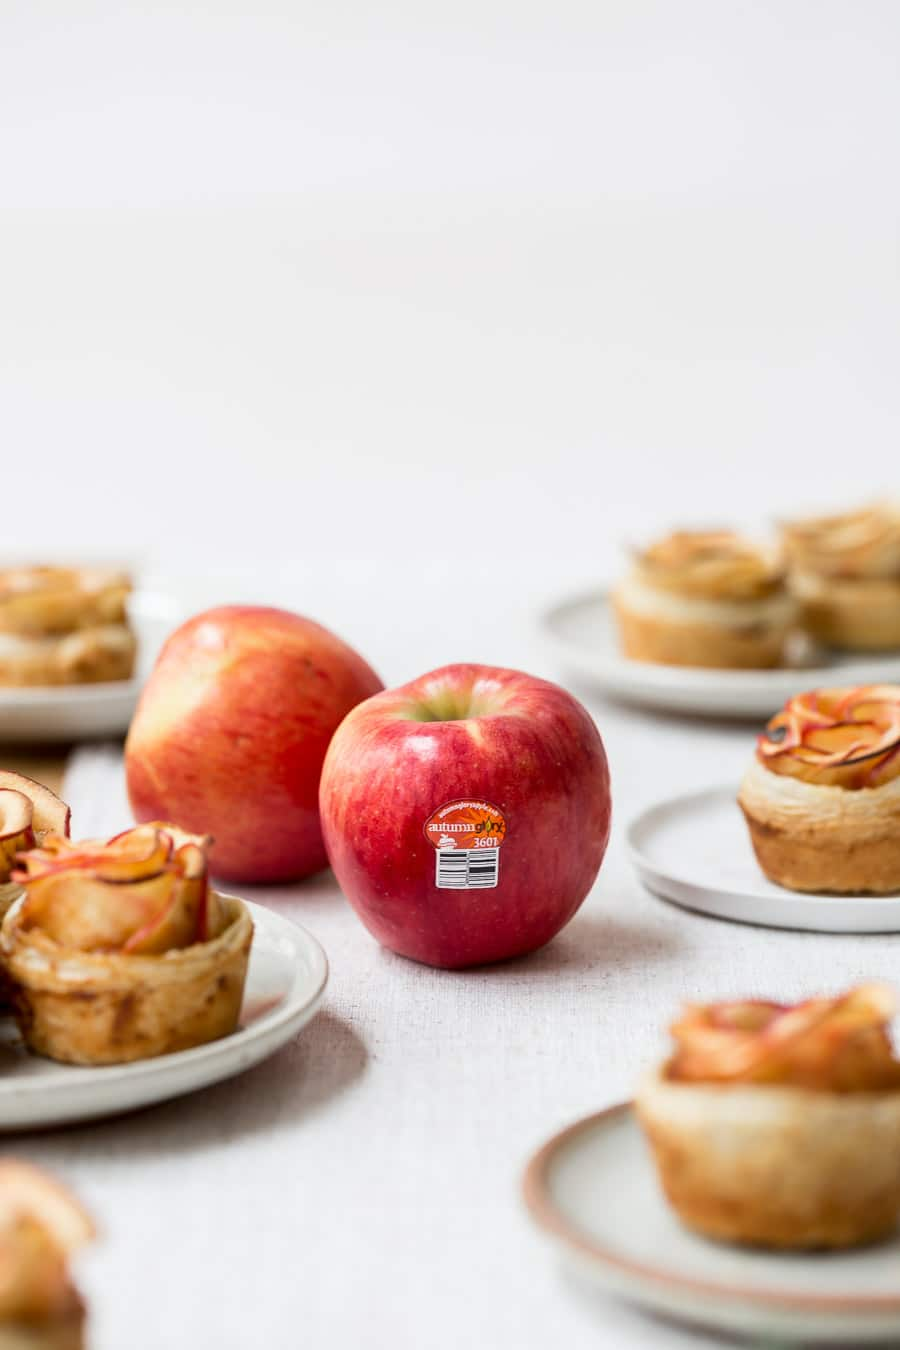 How To Make Apple Roses - Showcasing Autumn Glory Apples